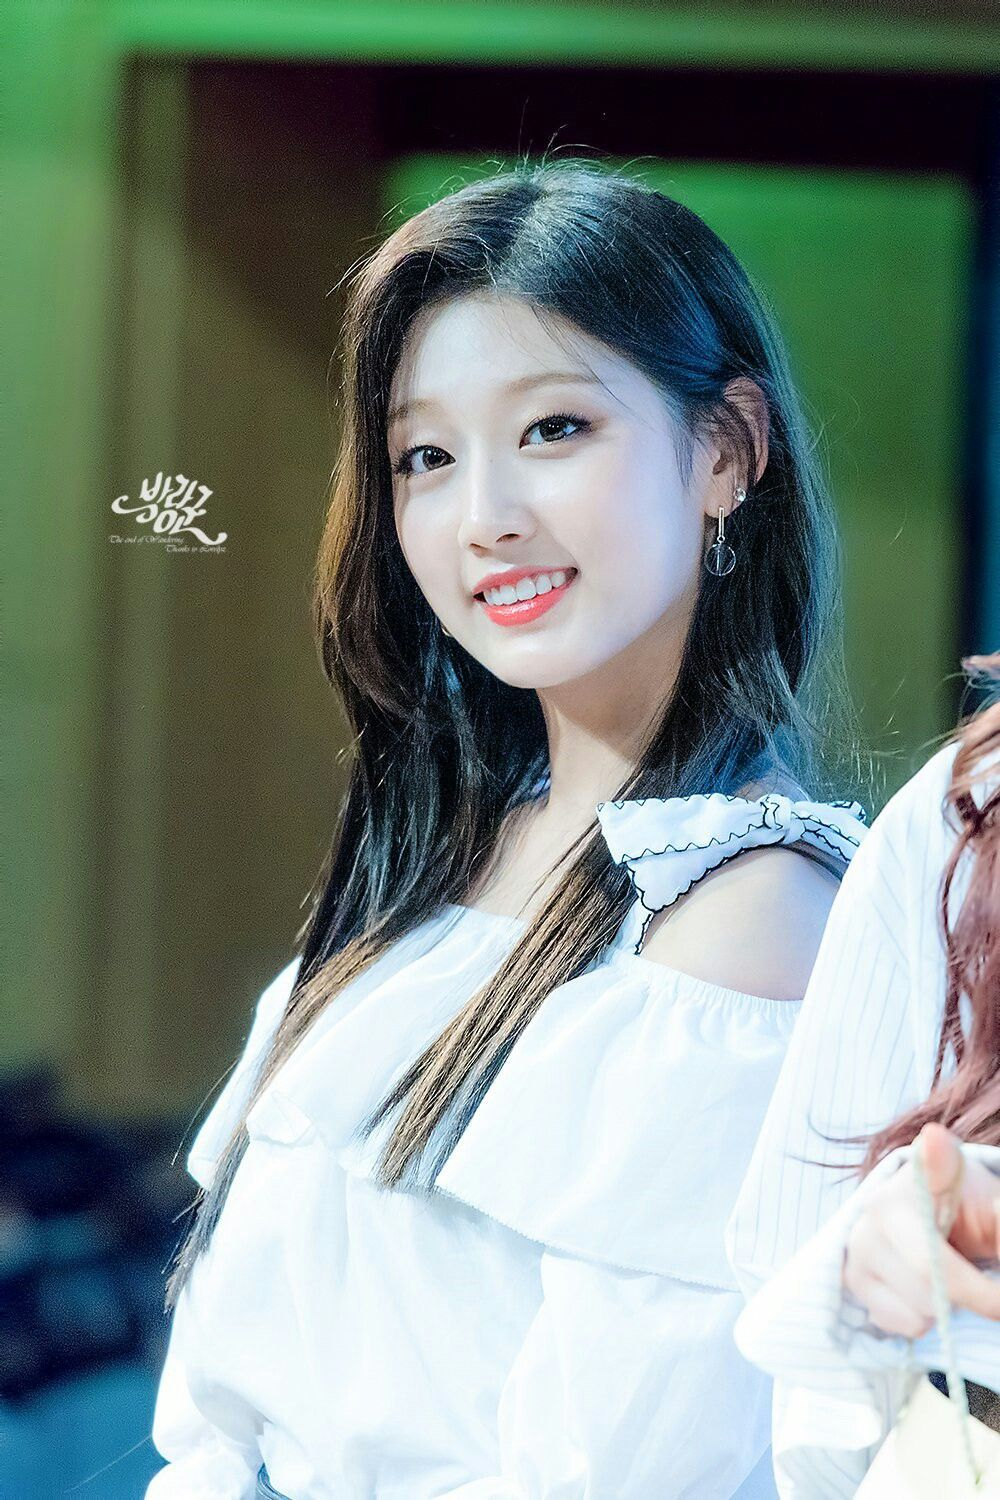 Jung Yein Werewolf Meet Yein Jeon She S 19 Year Old Beta Tell Me If I Need To Change I Don T Mind Of The Falling Sun Pack She S One Of The